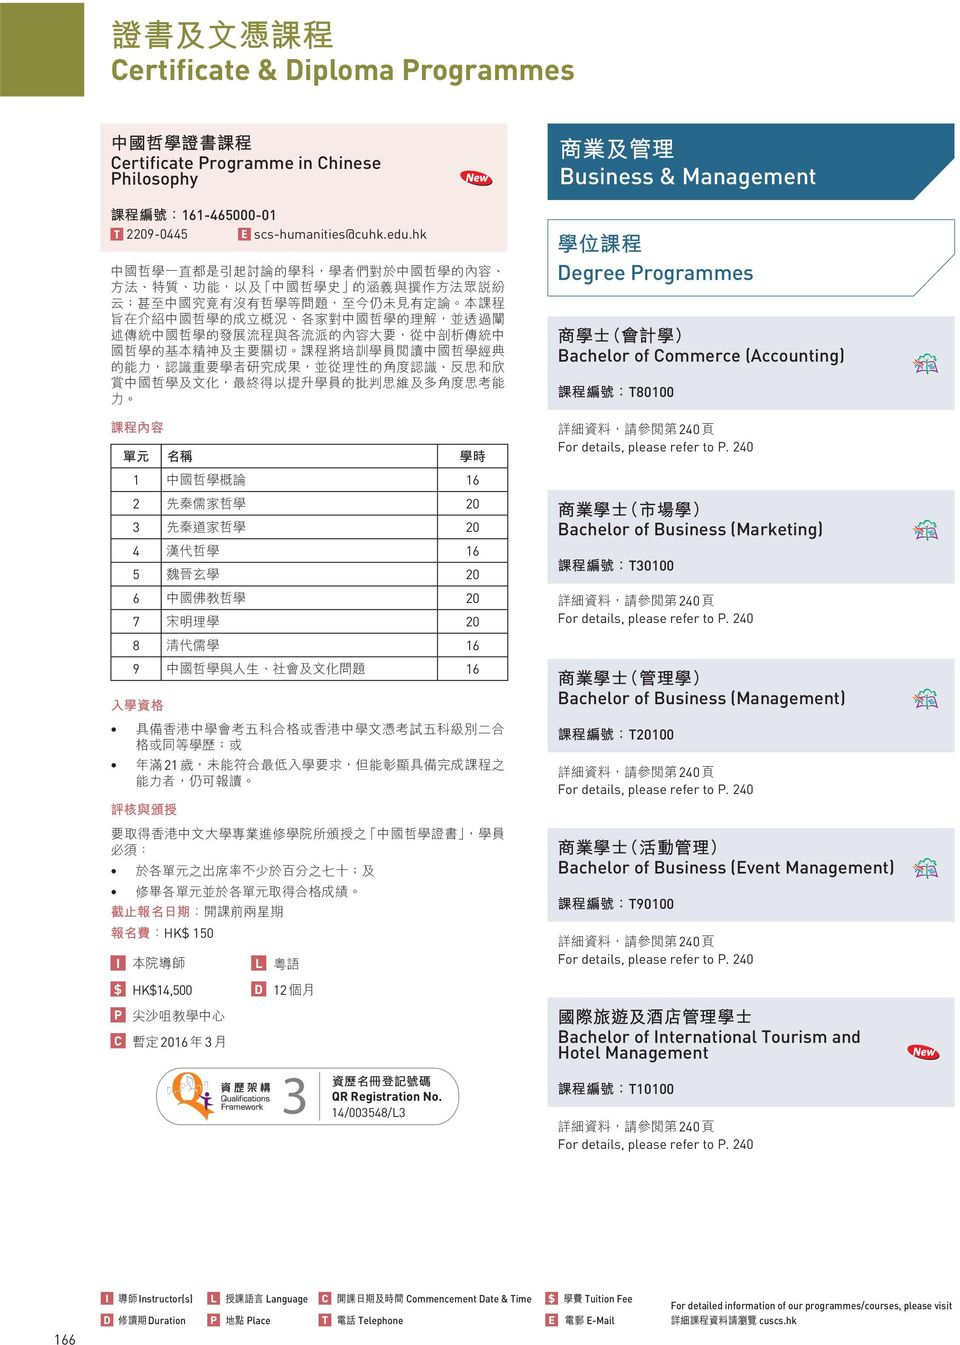 Business (Marketing) T0100 240 Bachelor of Business (Management) T20100 240 Bachelor of Business (Event Management) T90100 240 $ HK$14,500 D 12 P C 2016